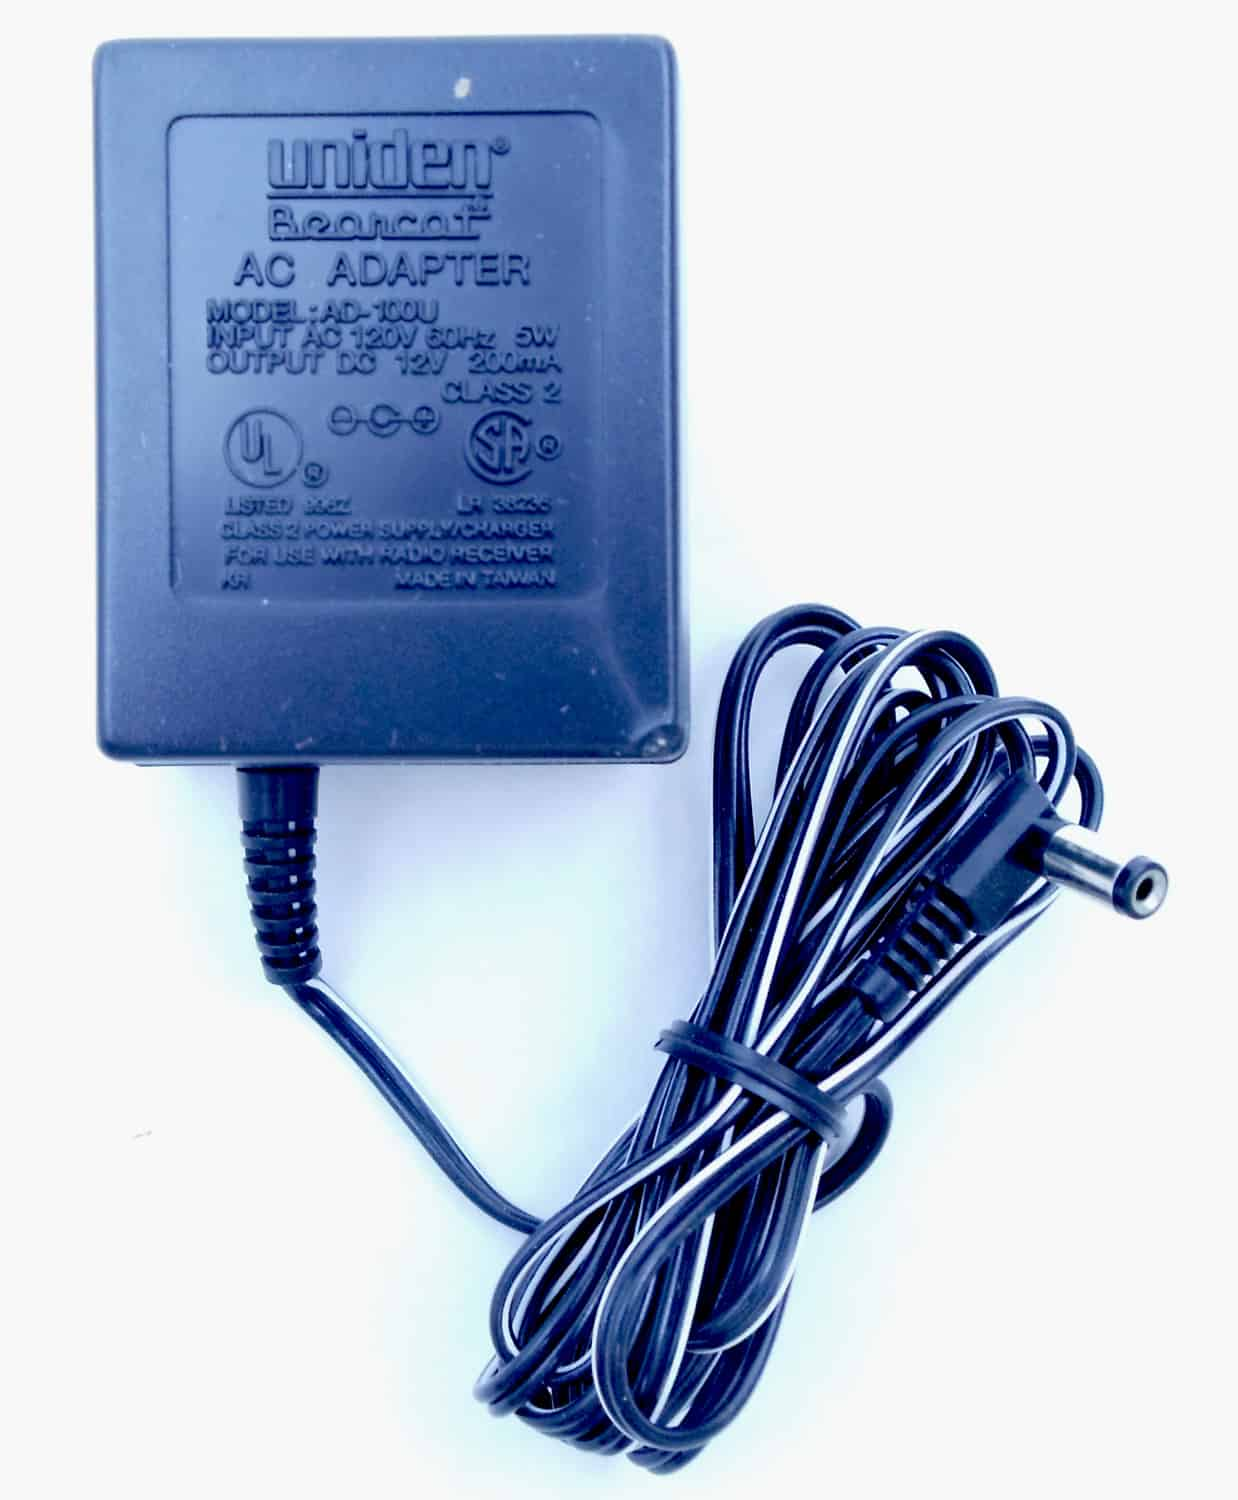 AD100U - Uniden Part AD-100U AC Adapter For Bc50Xl & Bc55Xl